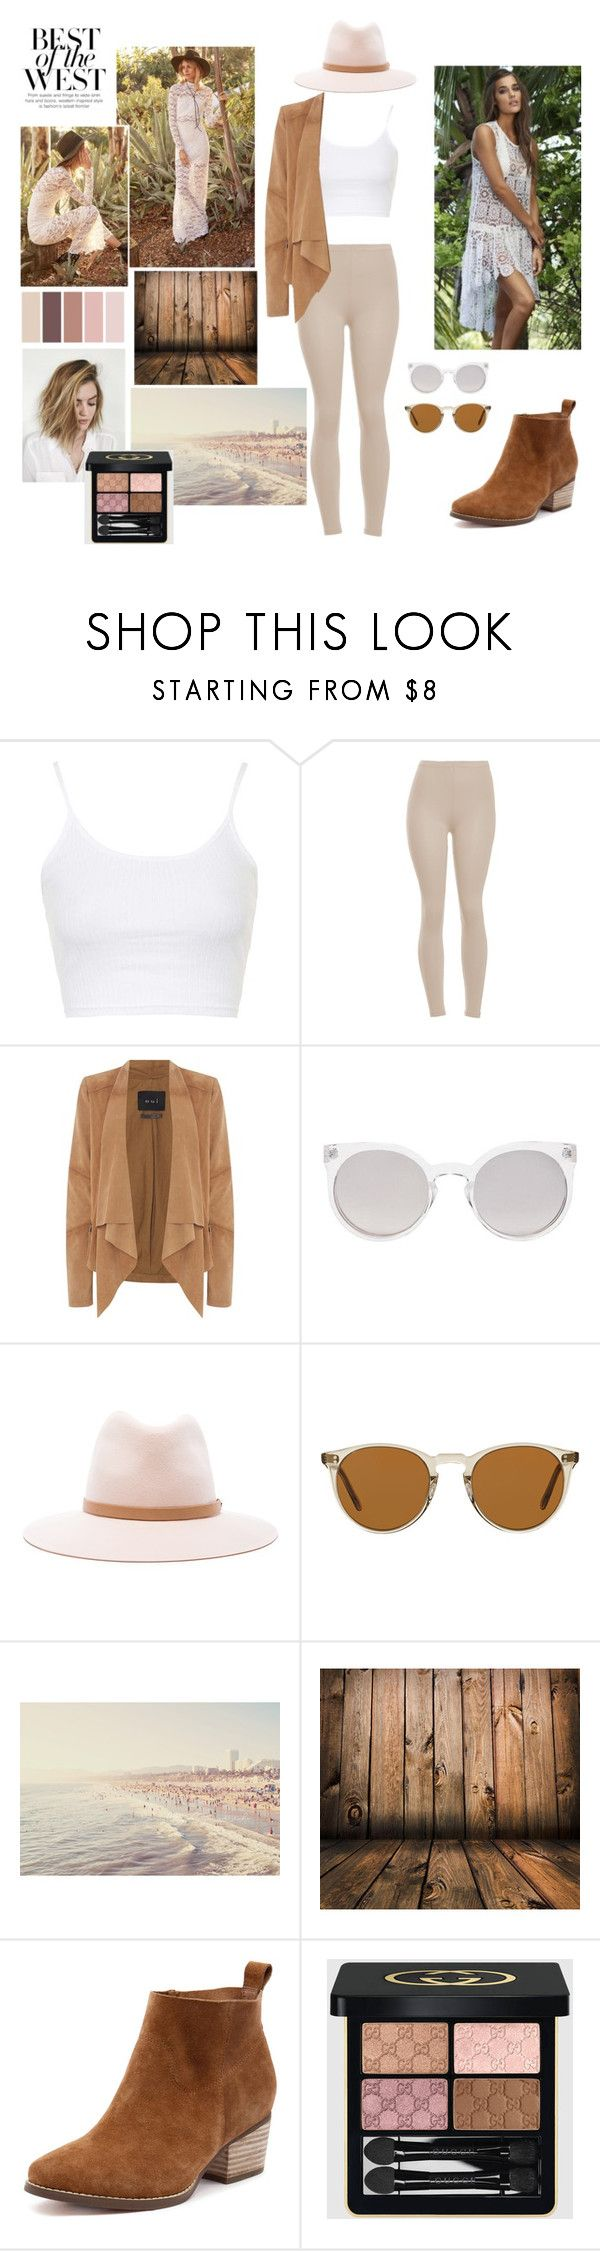 """""""Romantic Western Vibe"""" by michelle-251 on Polyvore featuring mode, Topshop, Oui, Kosha, rag & bone, Oliver Peoples, Gucci et modern"""